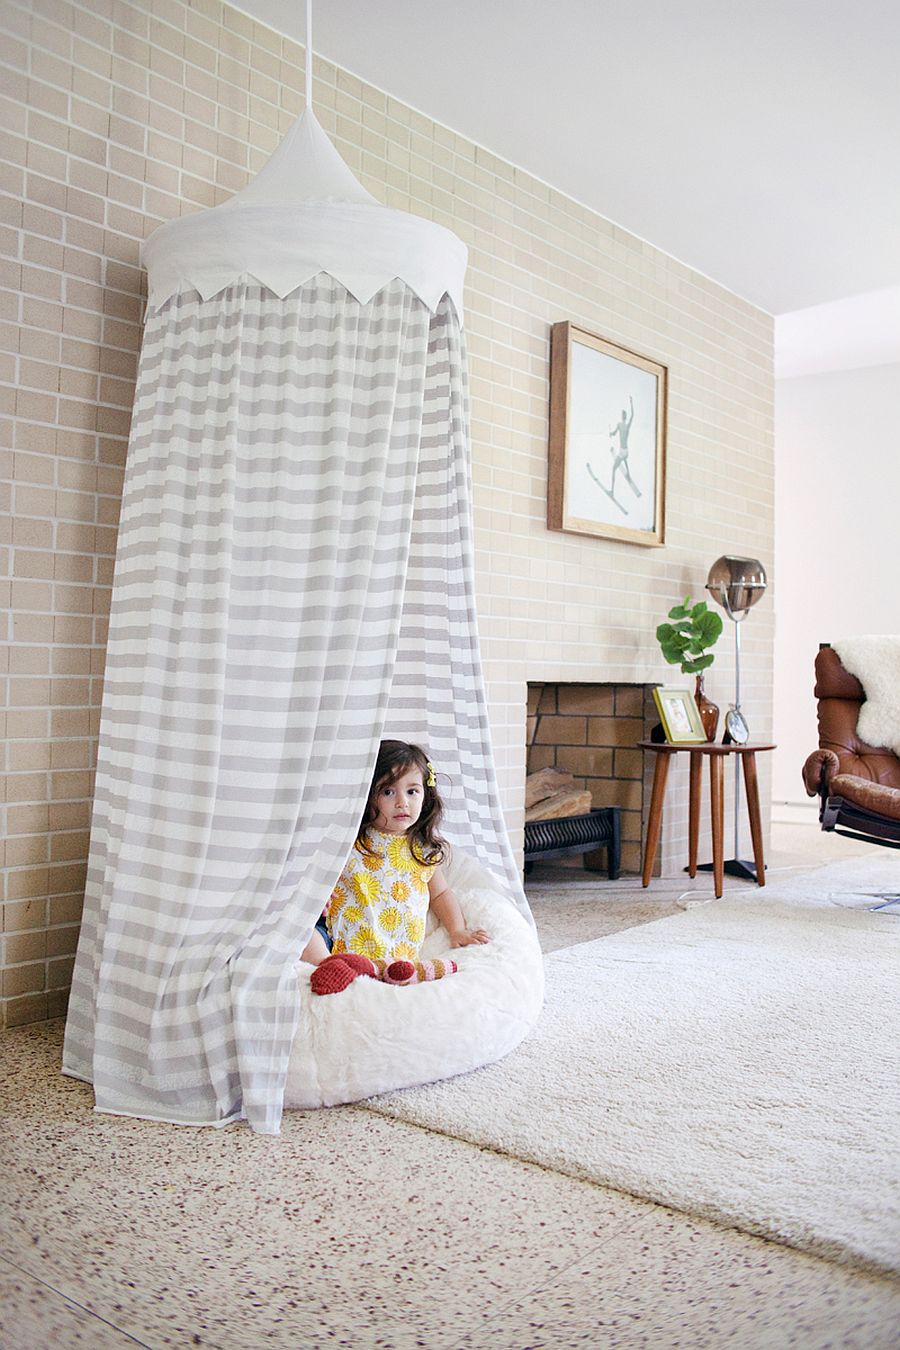 Give-DIY-teepee-a-shot-as-you-spend-time-indoors-this-Spring-71766